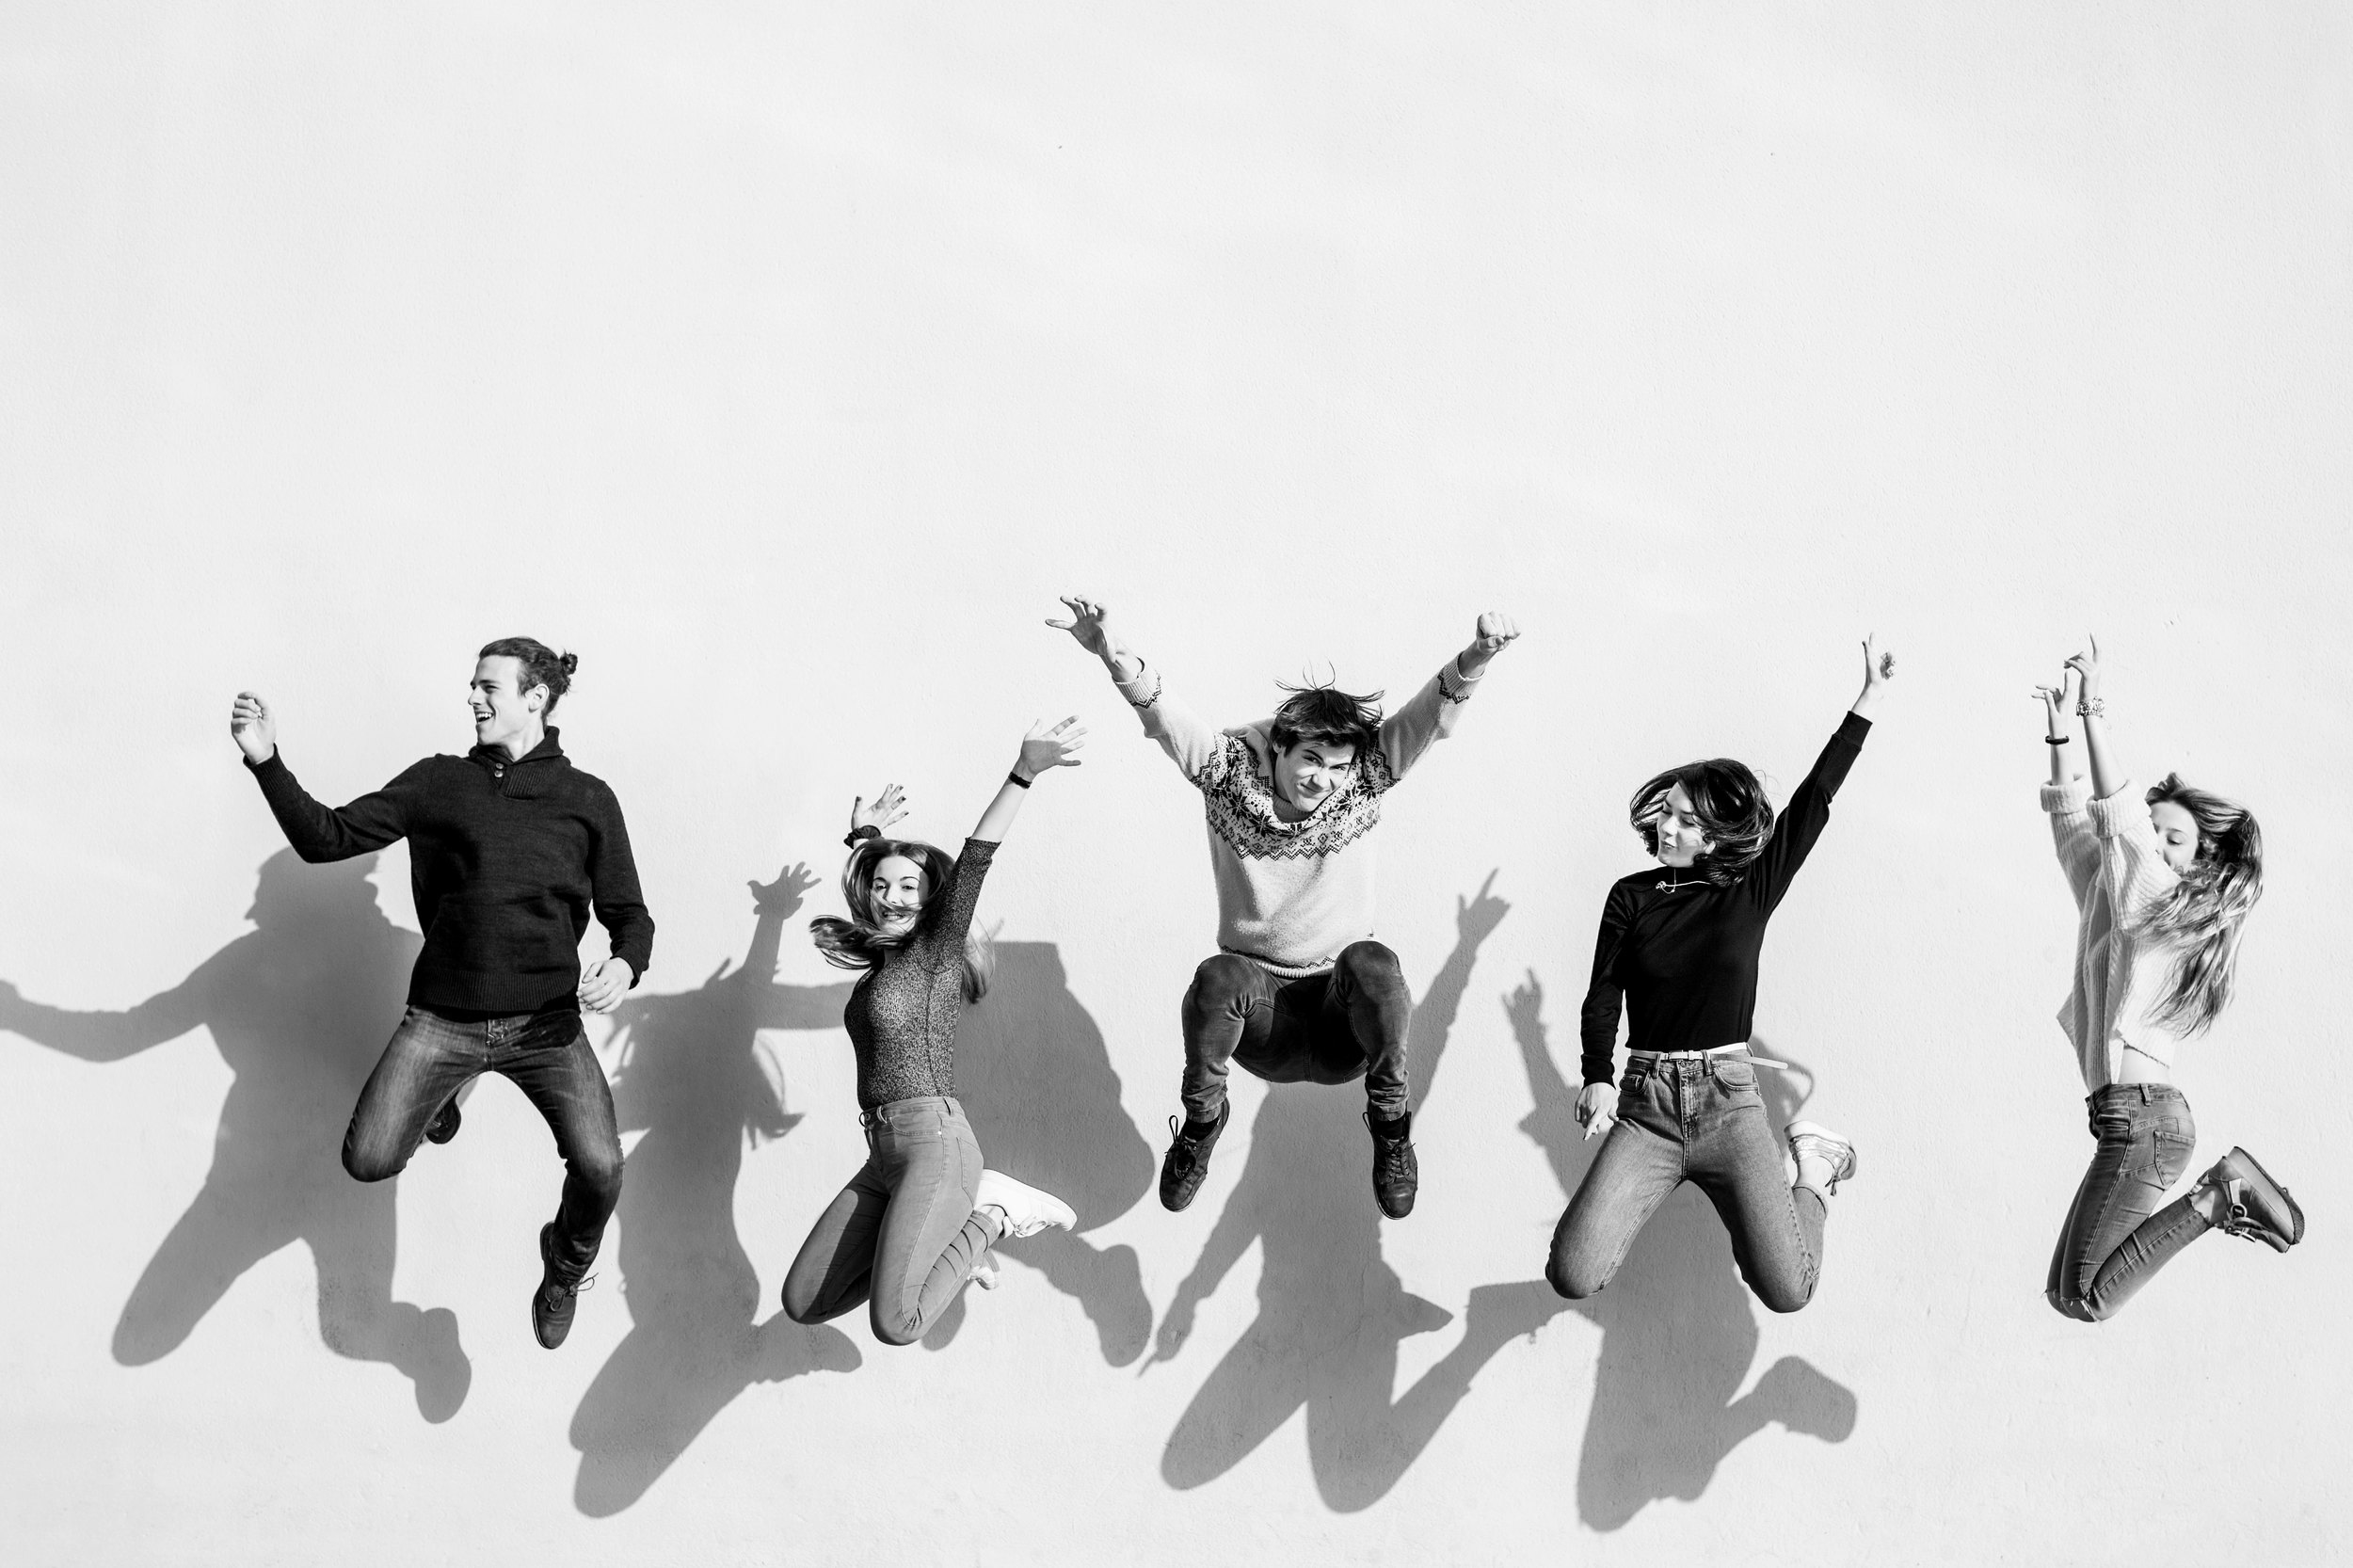 Employees jumping for joy